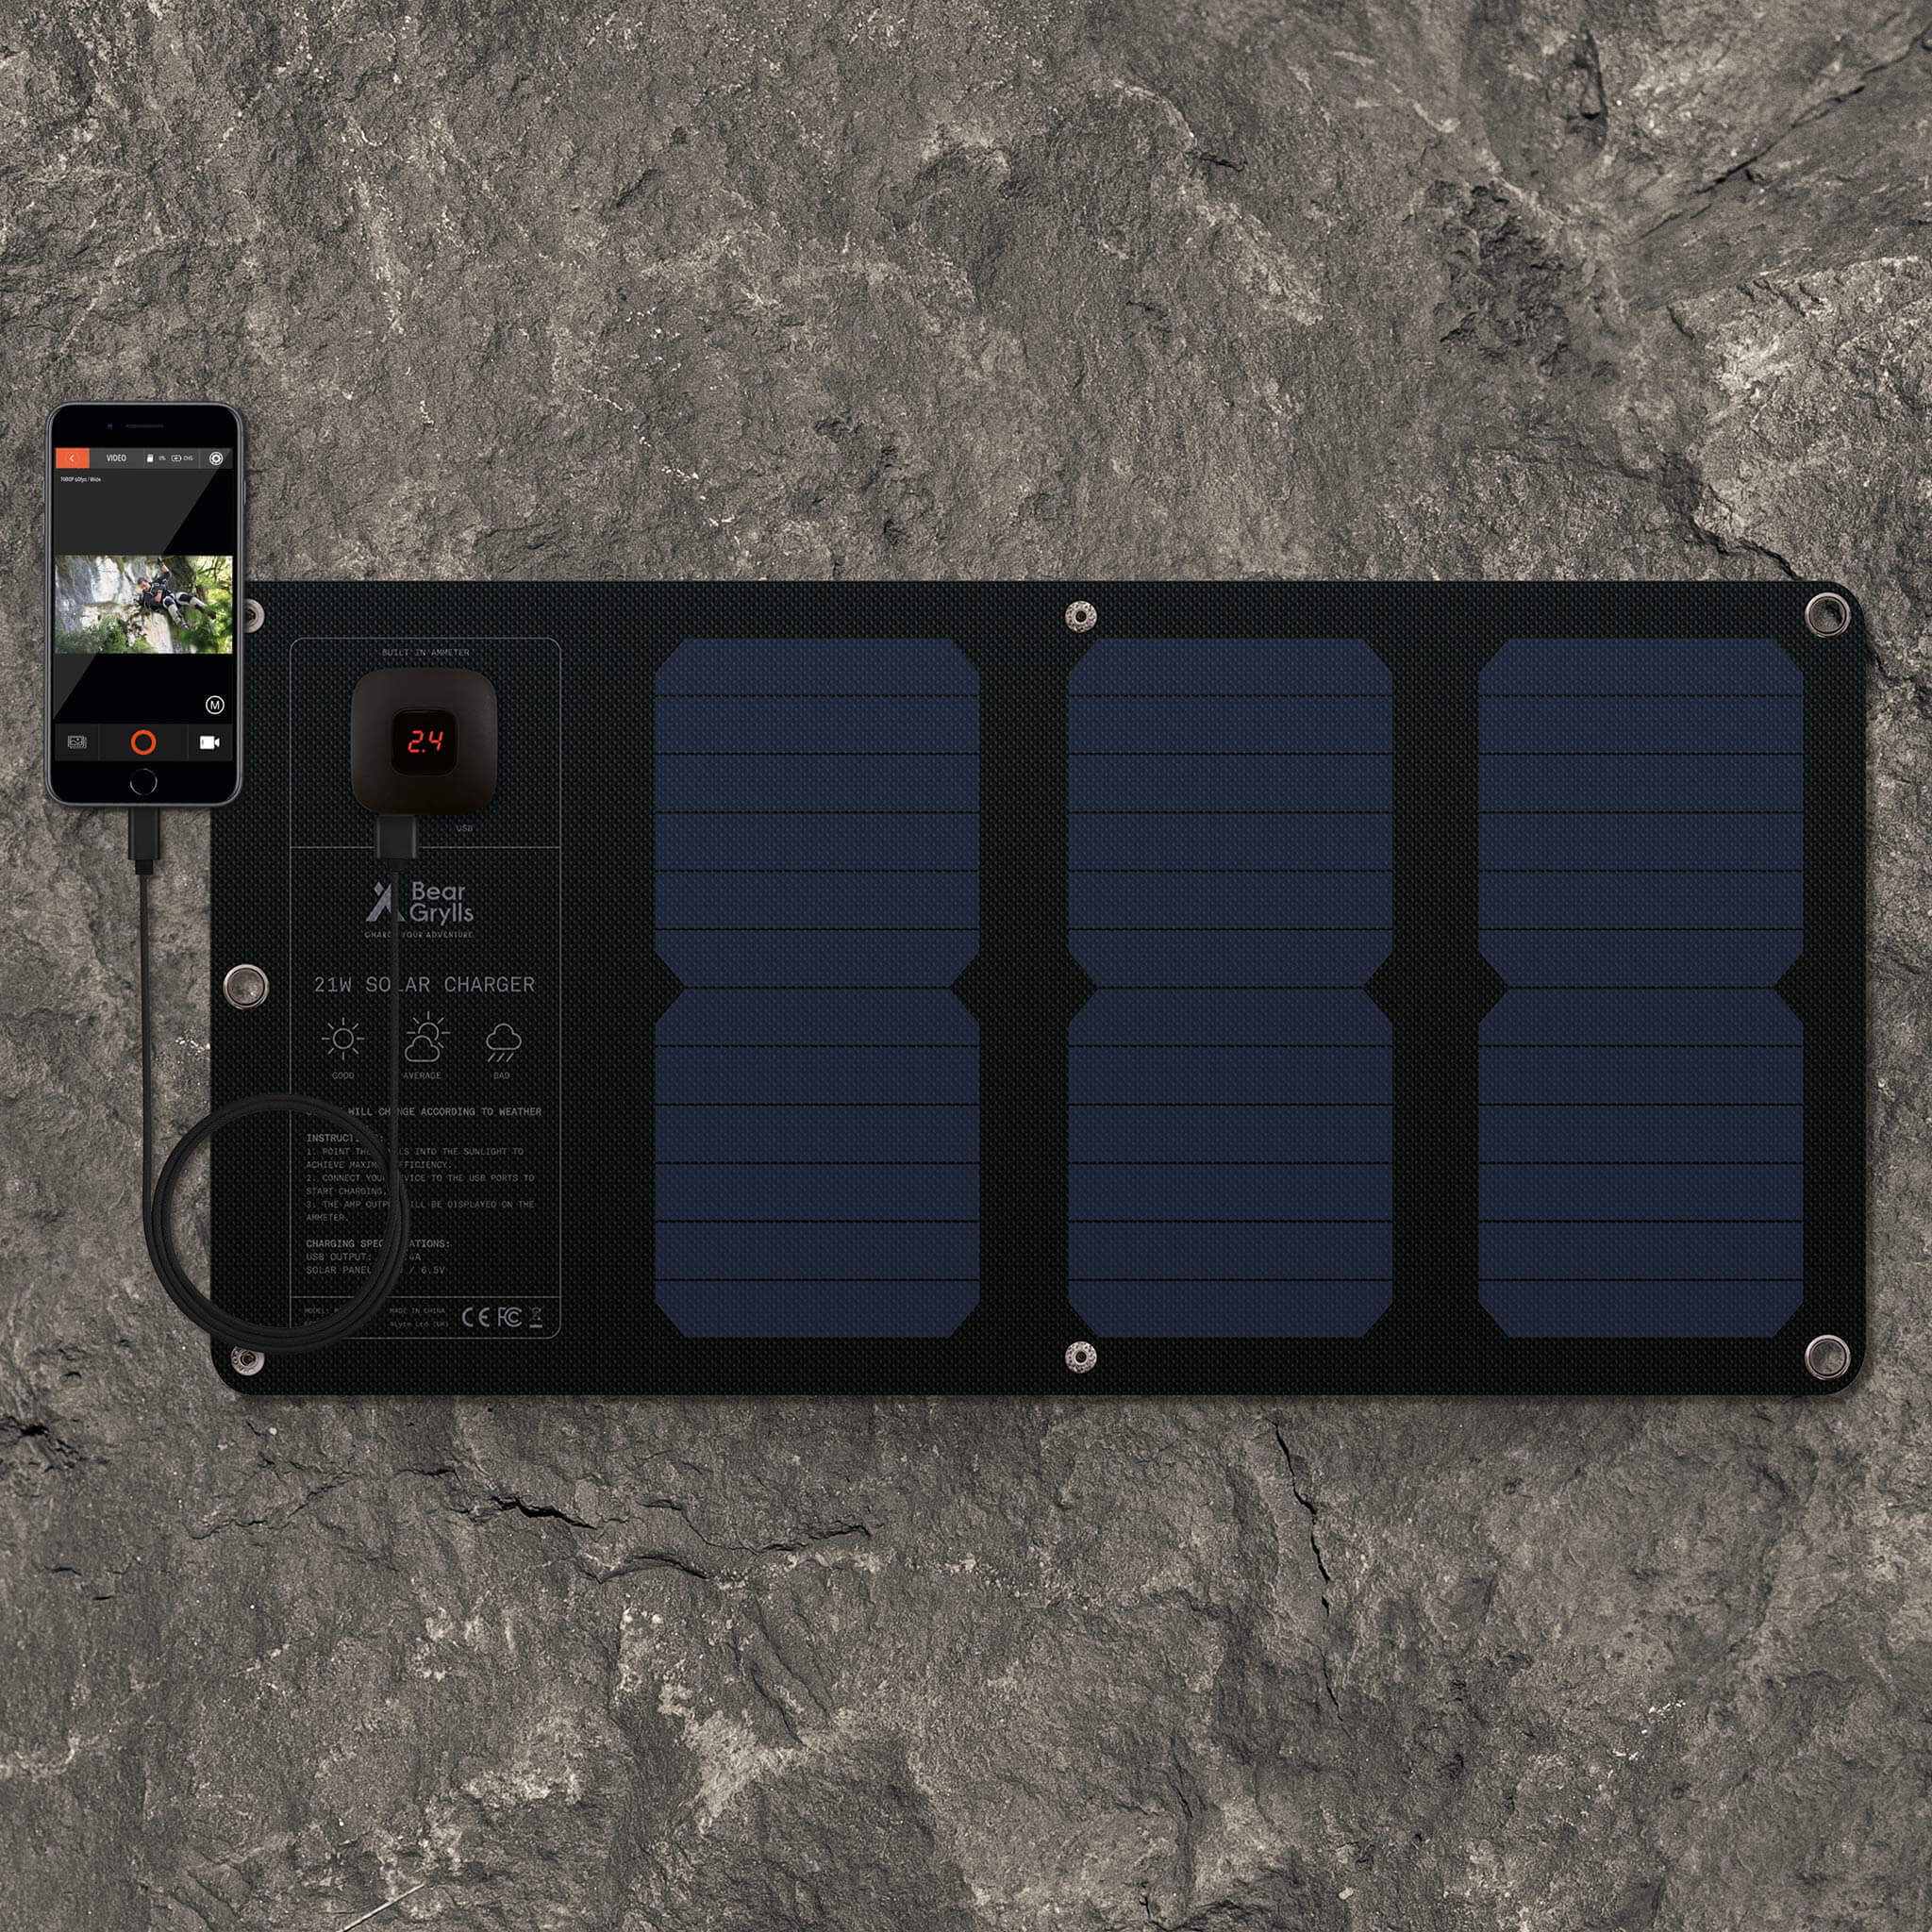 Fast charging technology used in the Bear Grylls 21W Fold-out Solar Mat